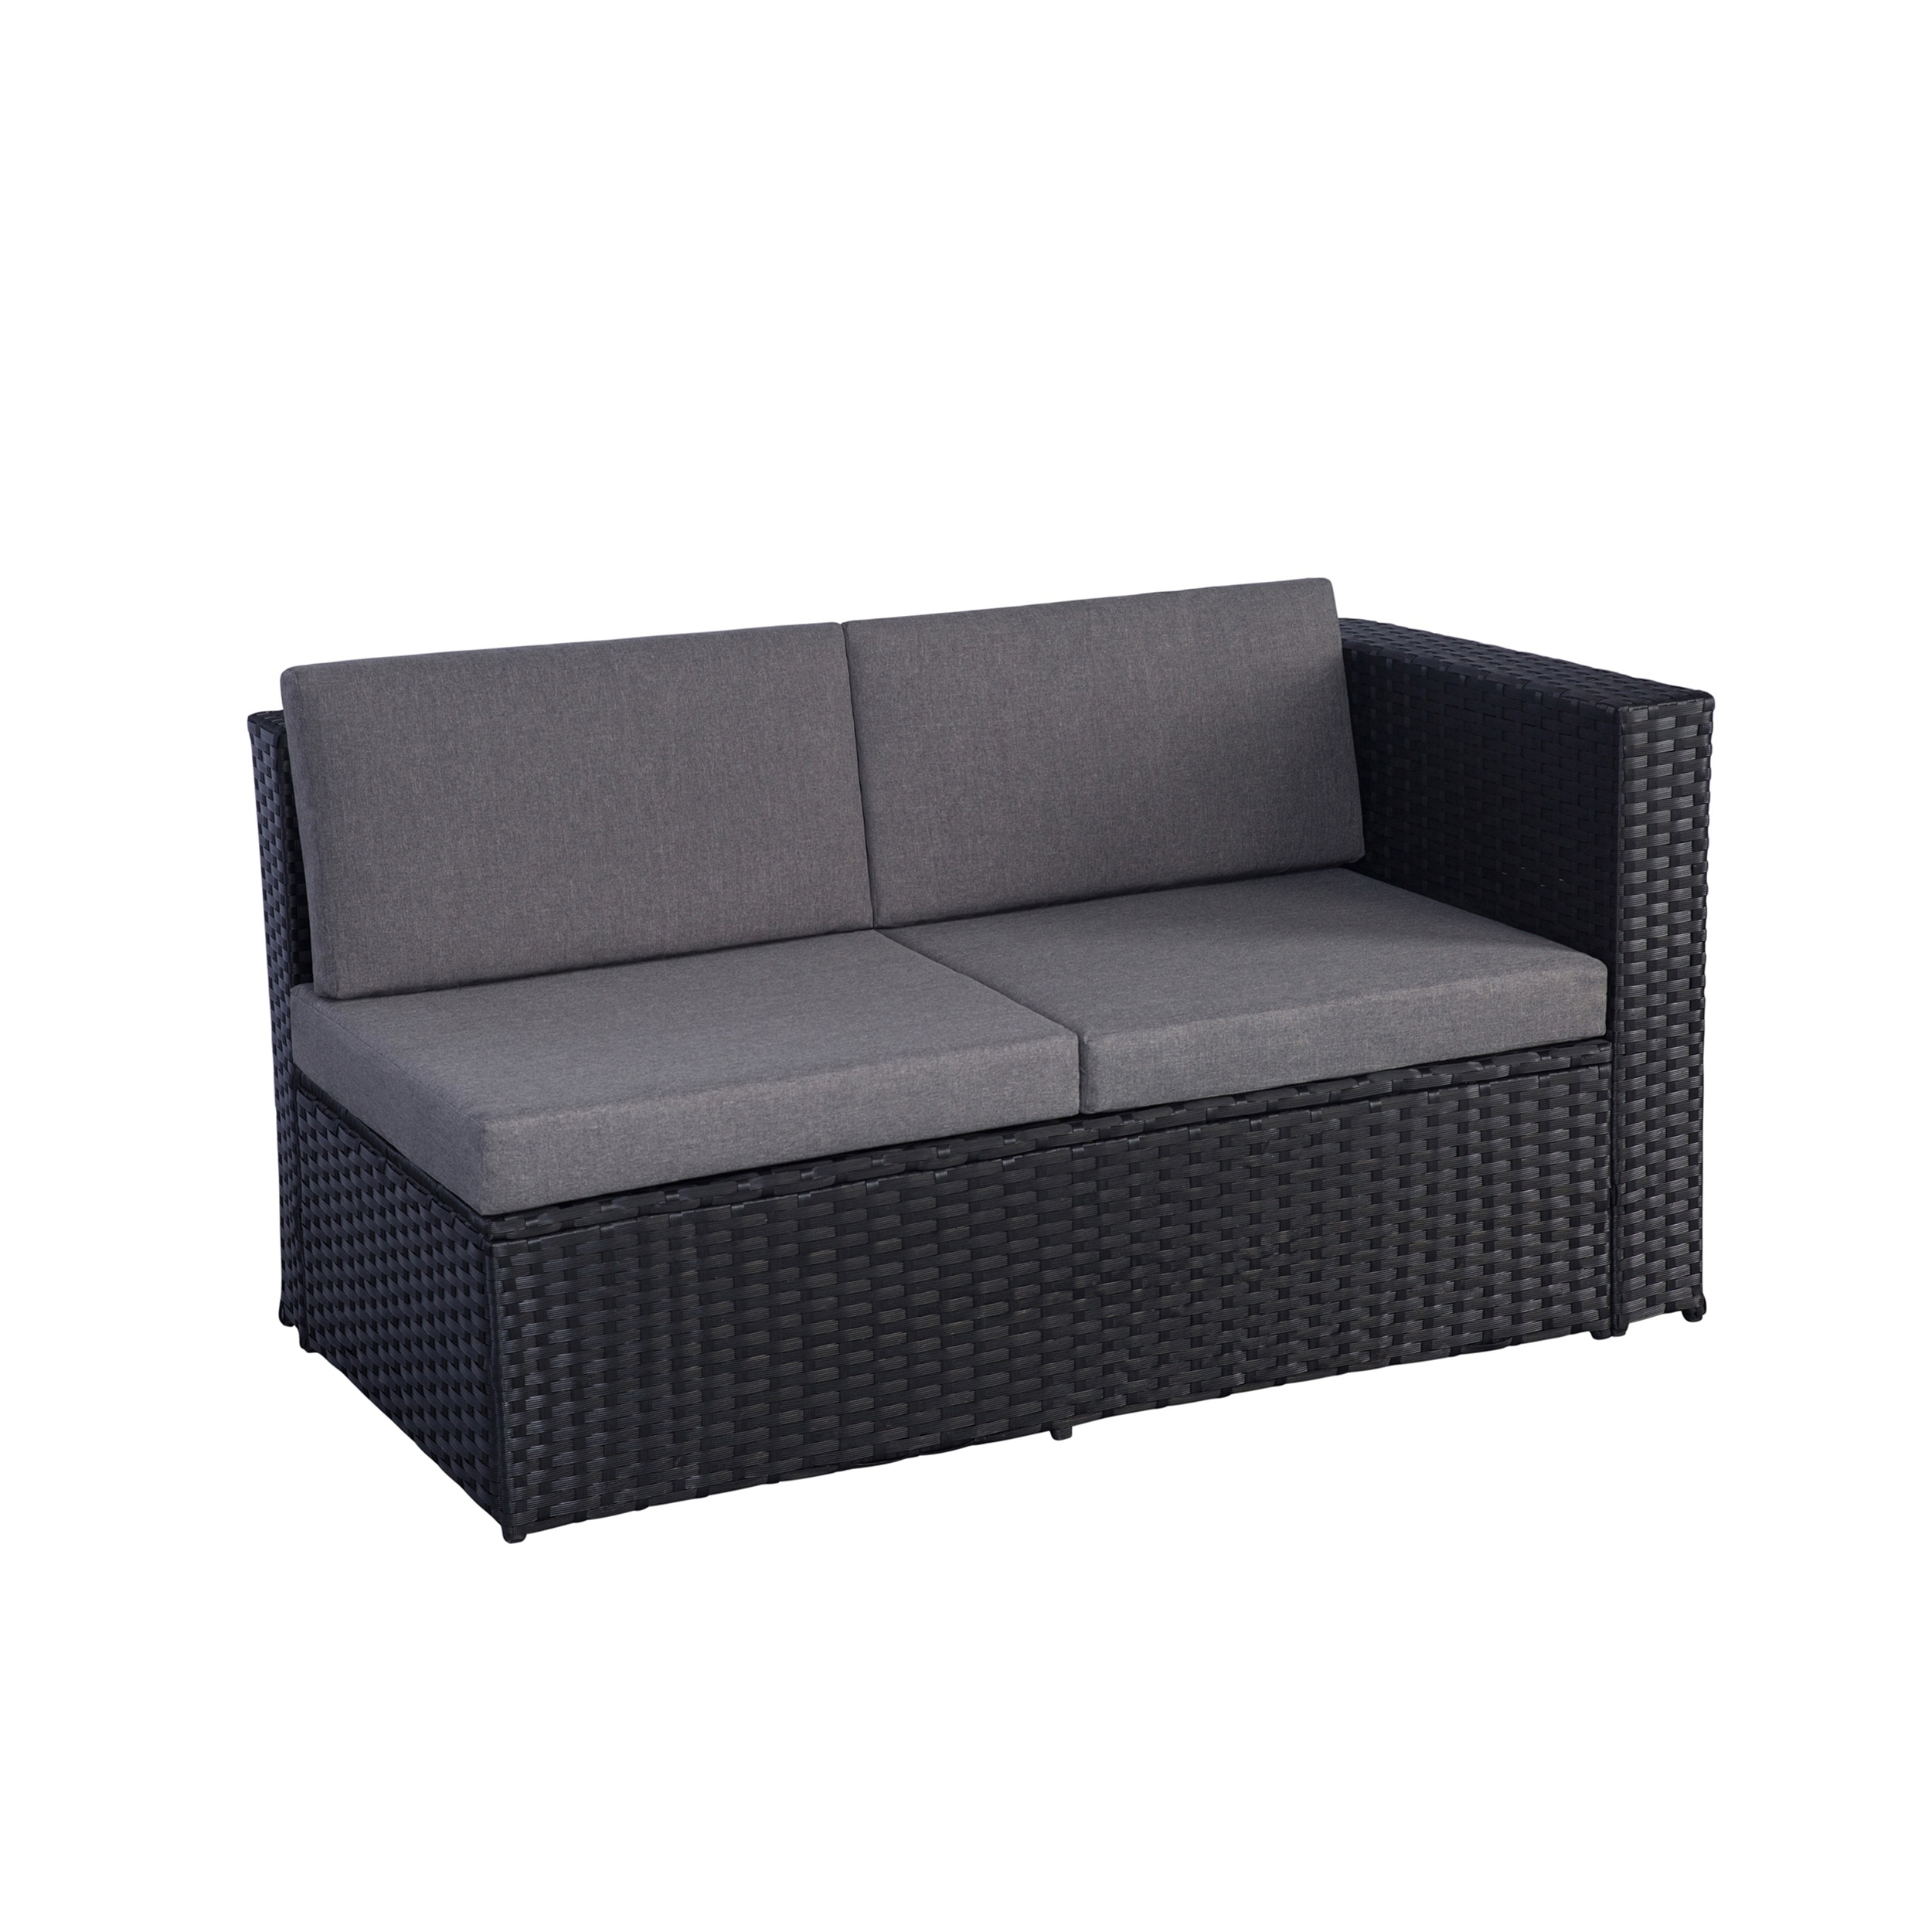 Cheap L Shaped Rattan Sofa Havenside Home Boothbay 6 Piece Resin Wicker Sectional Sofa Set With Grey Cushions